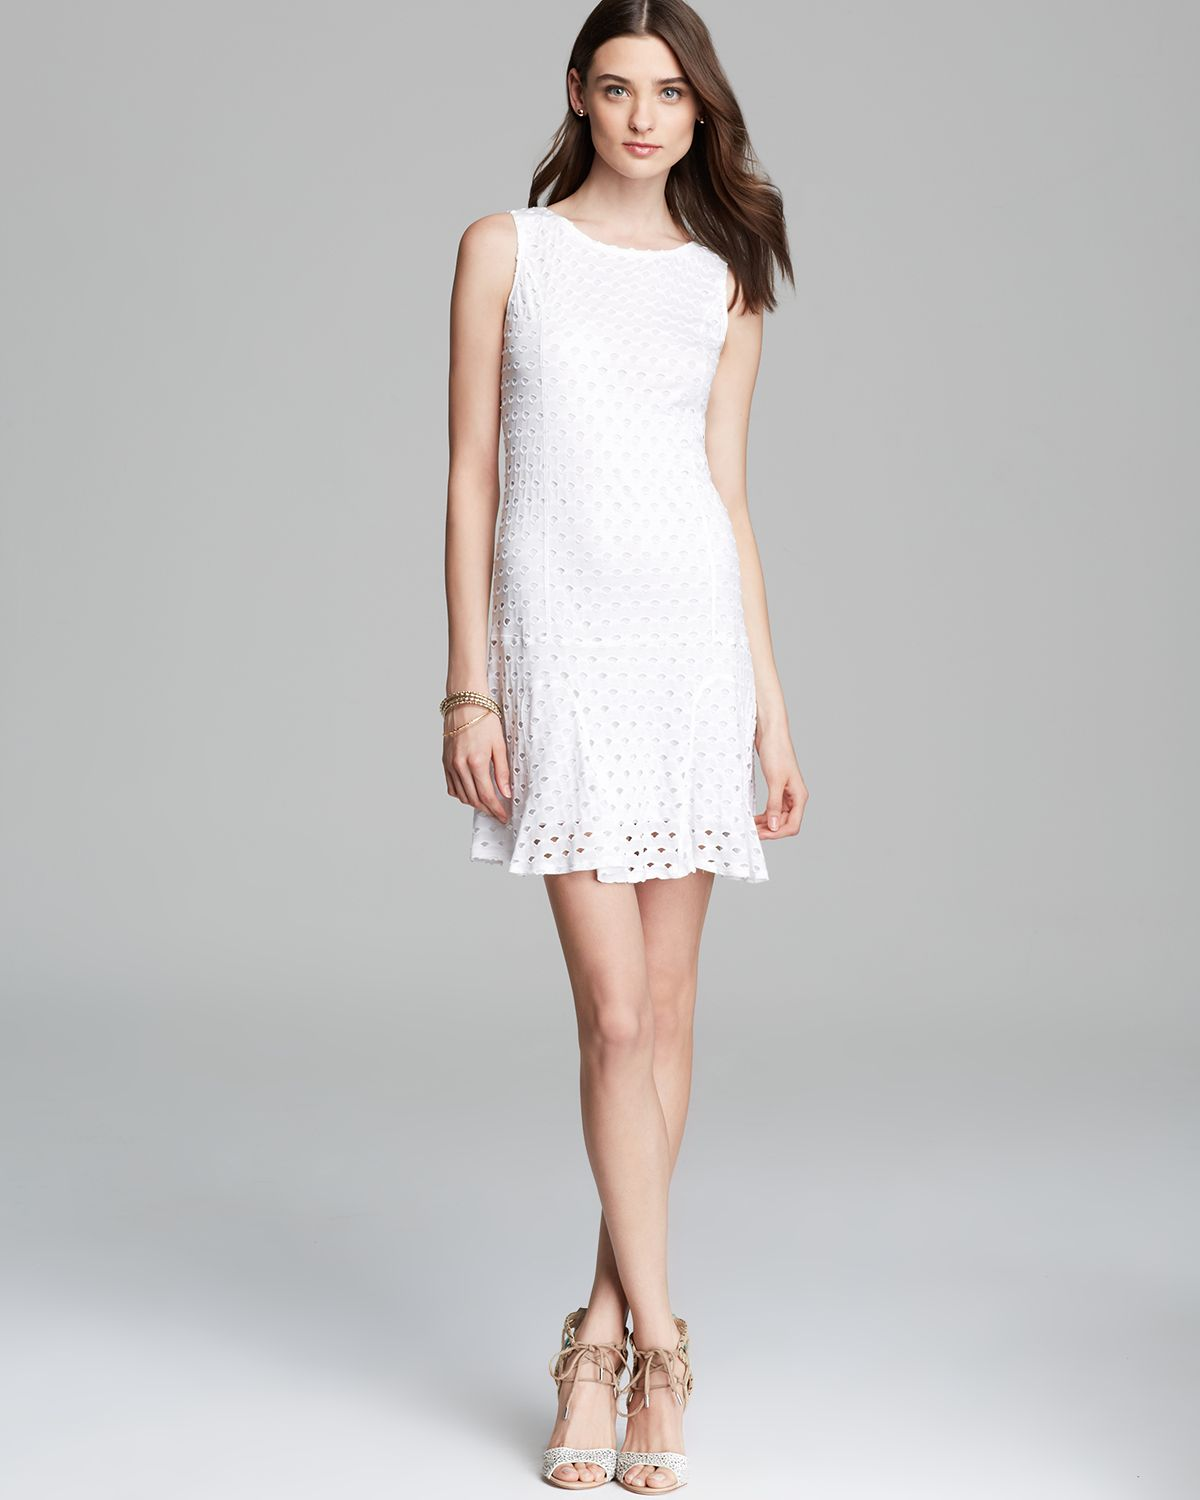 twenty tees Dress - Perforated | Bloomingdale's